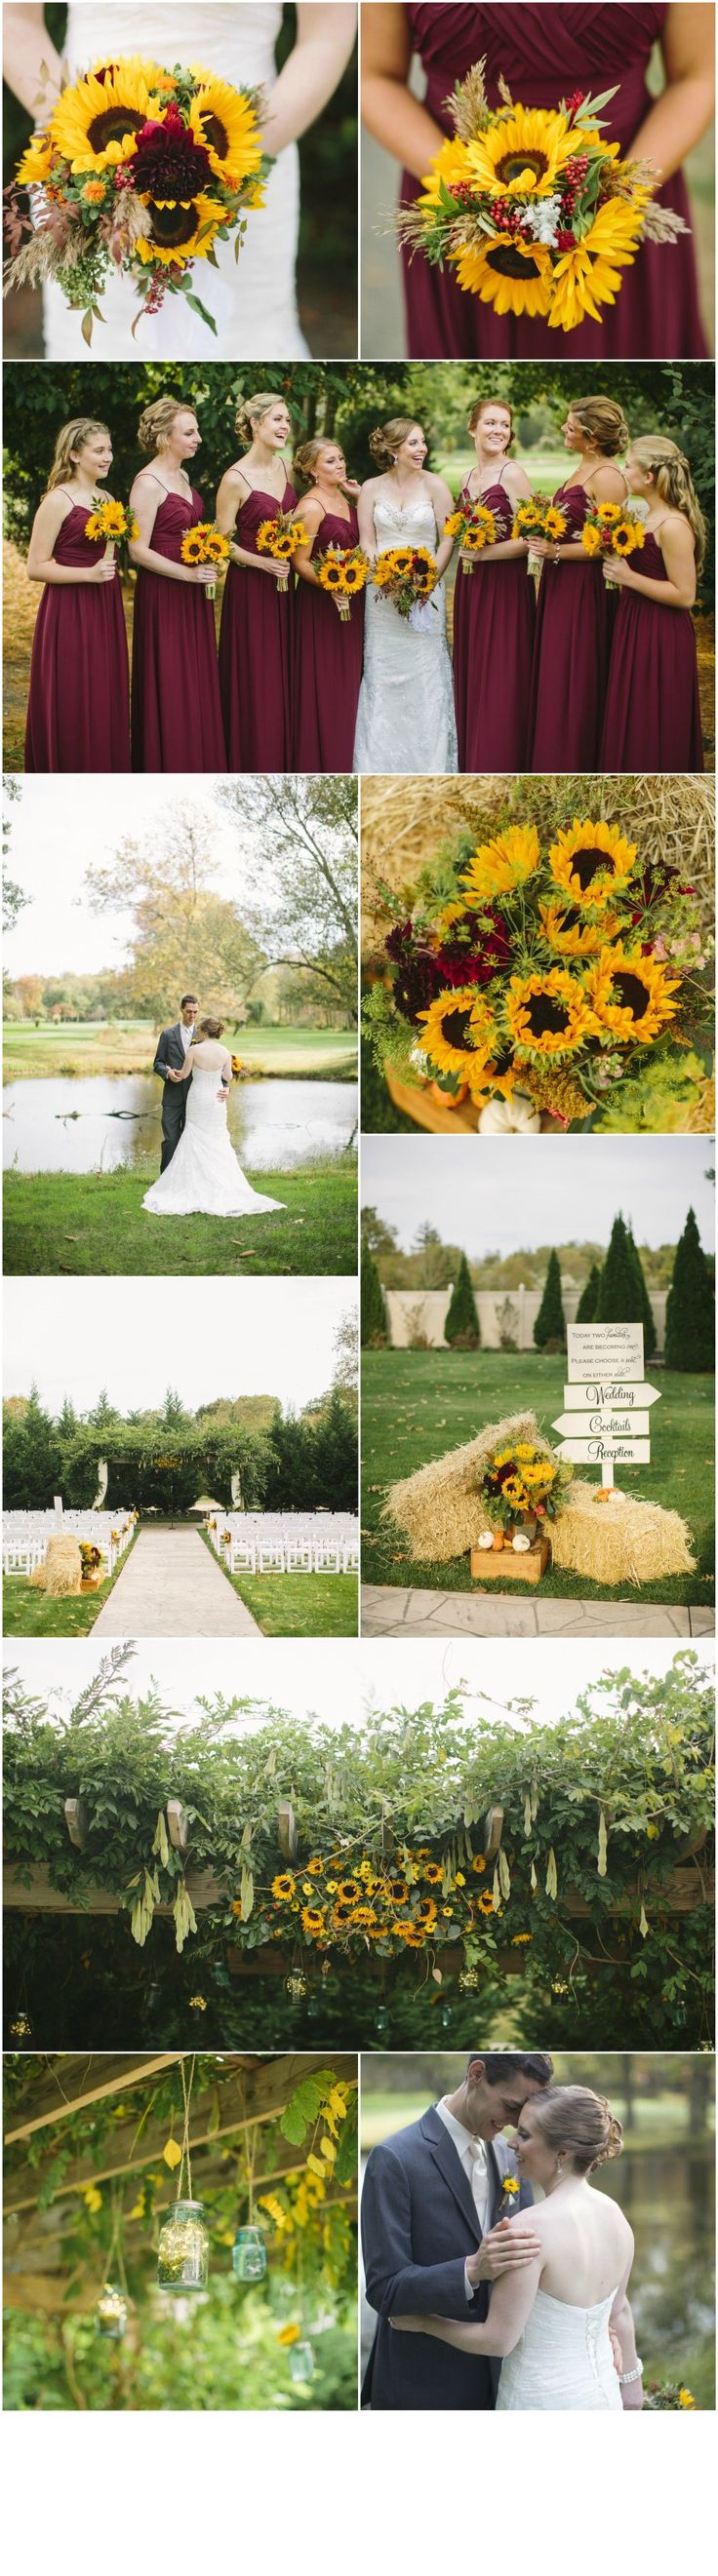 rustic wedding colors best photos - rustic wedding  - cuteweddingideas.com